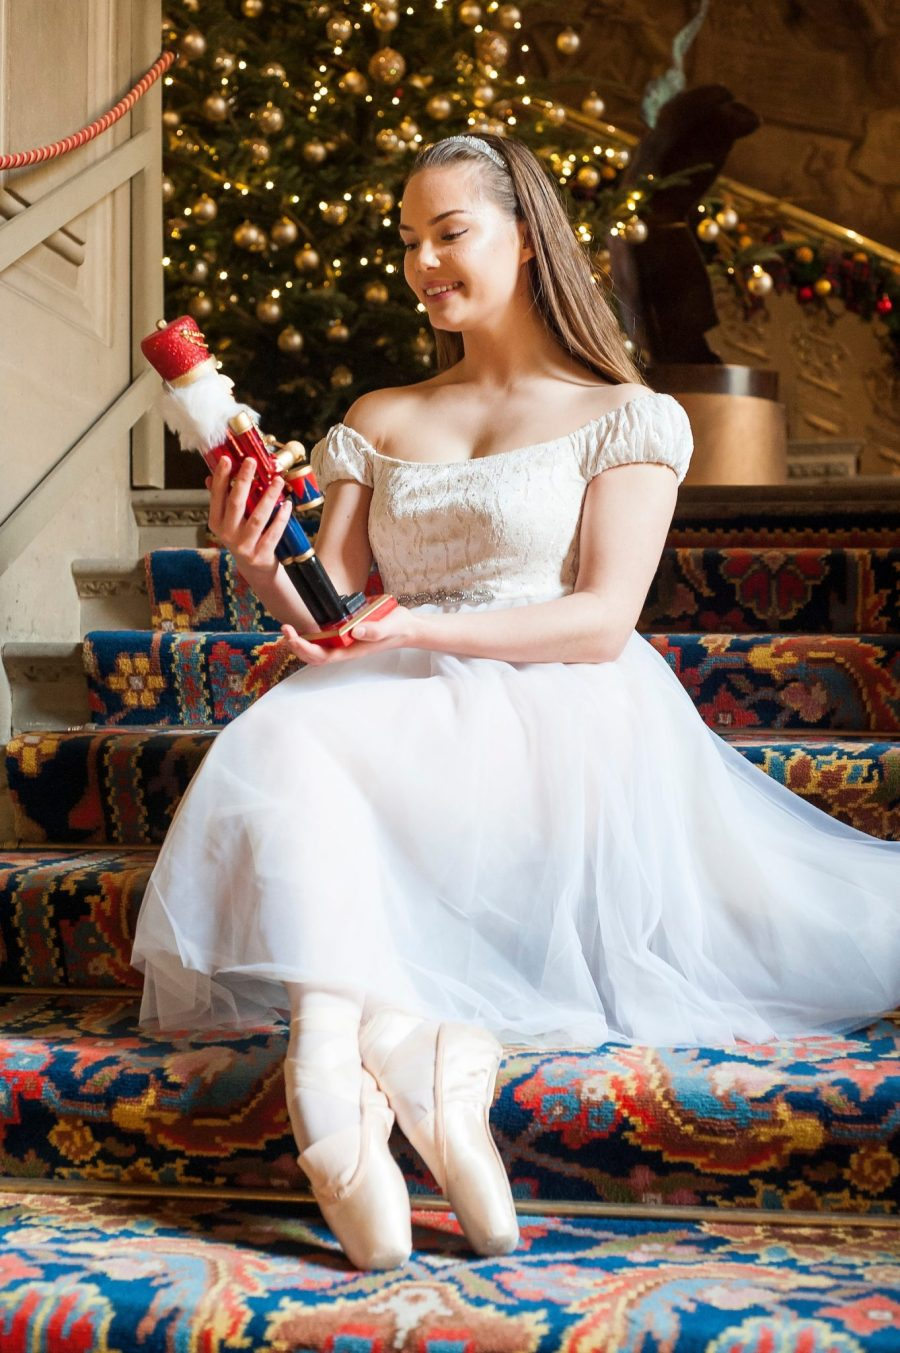 Chatsworth House Press Launch - Ballerinas from the Nutcracker at Chatsworth on the Eve of its Christmas Season Opening - Ballerina Daisy Edwards 04 October 2016 Copyright Paul David Drabble www.pauldaviddrabble.photoshelter.com